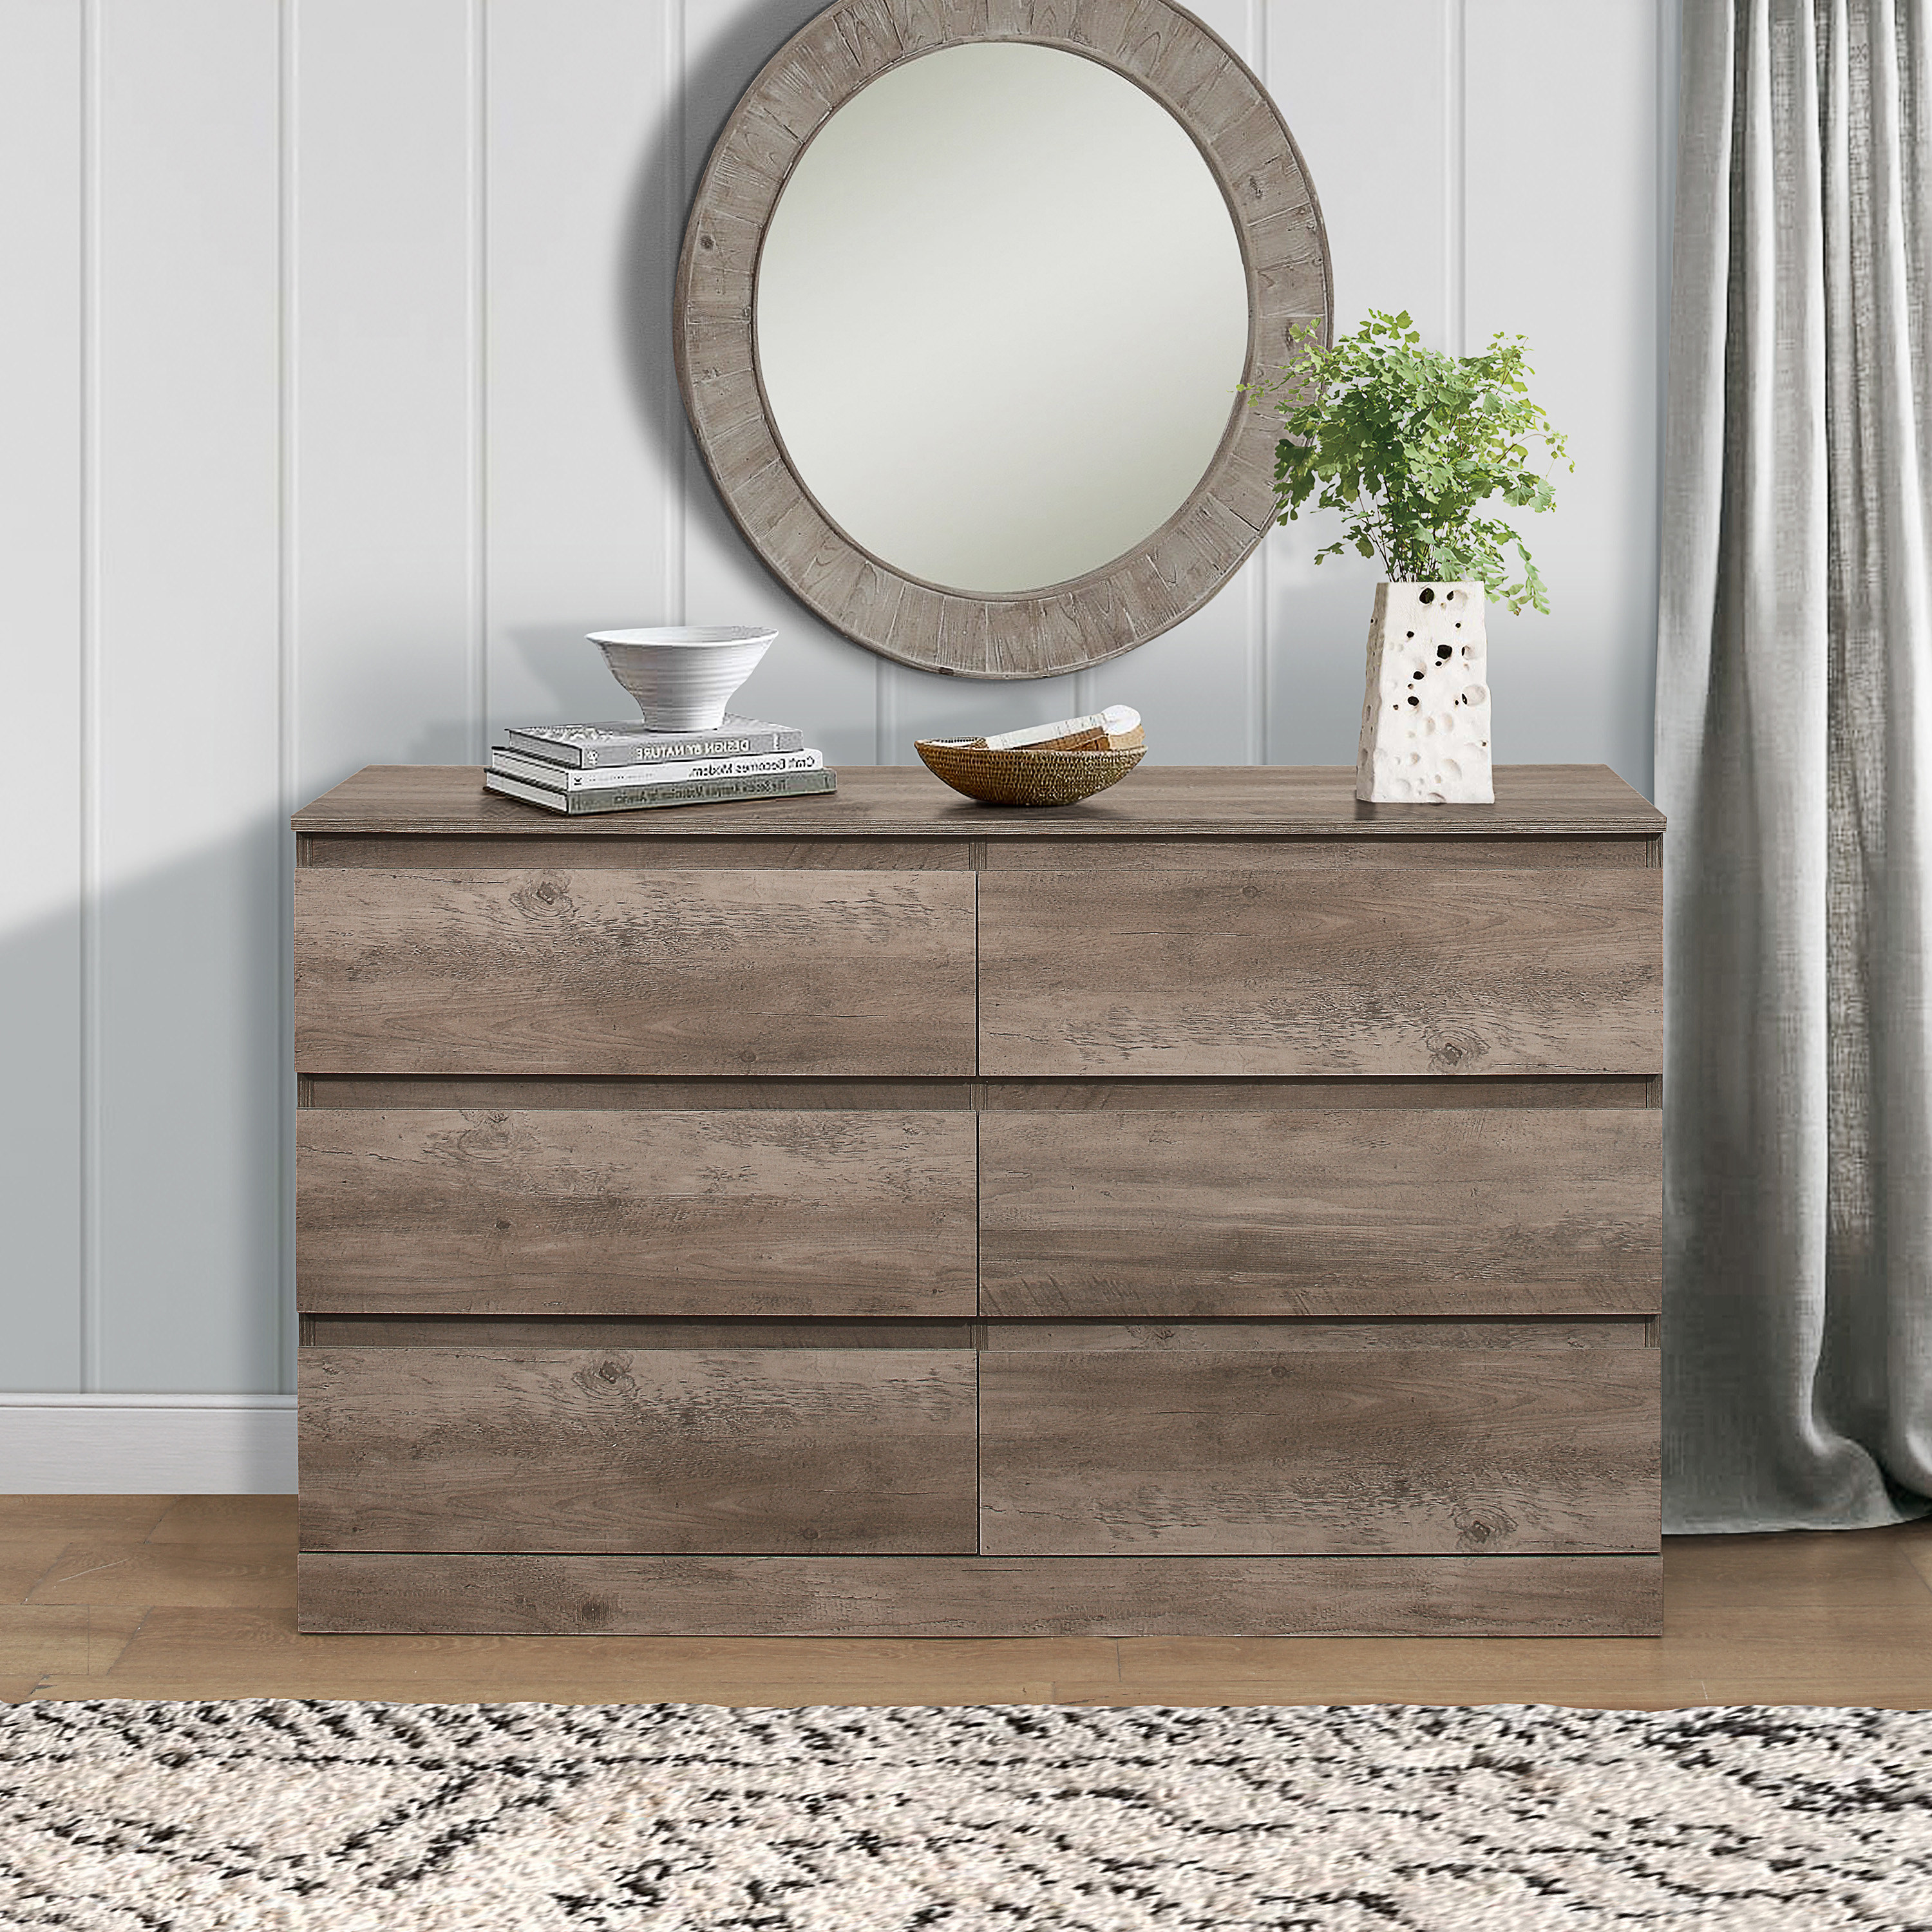 The grey wood dresser with a mirror hanging over it